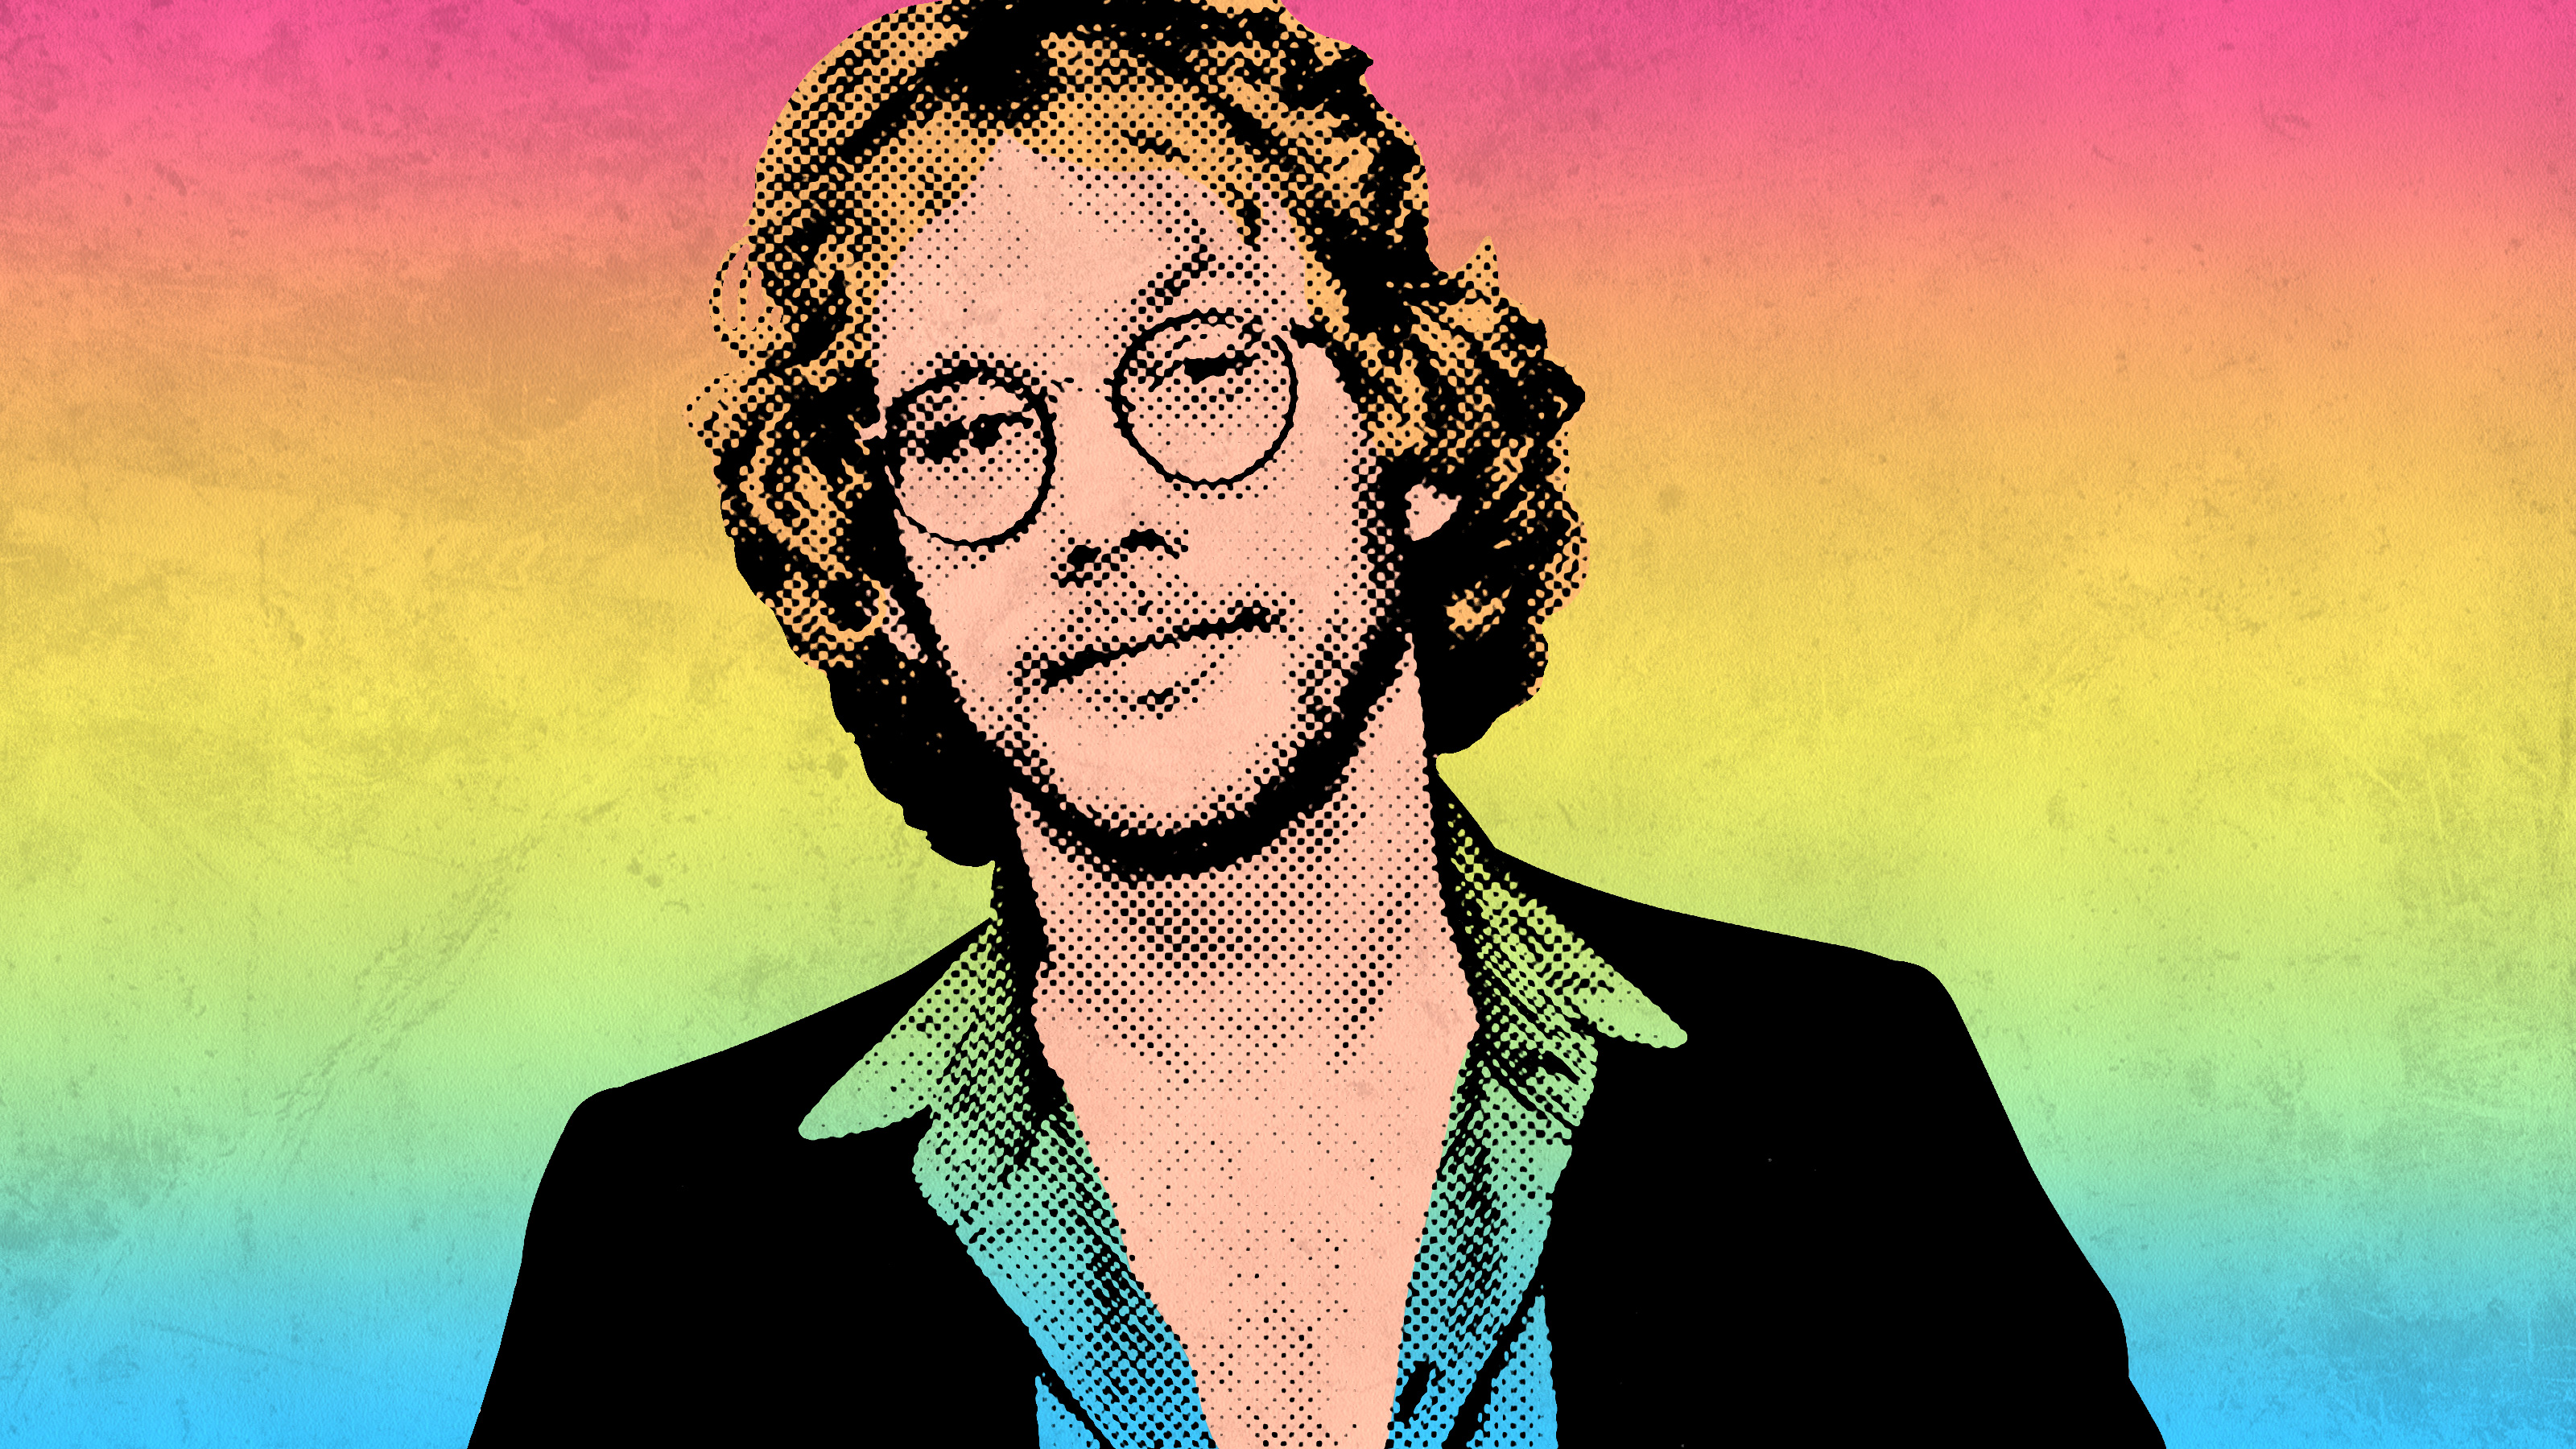 Untangling the Complicated Legacy of Warren Zevon - The Ringer on